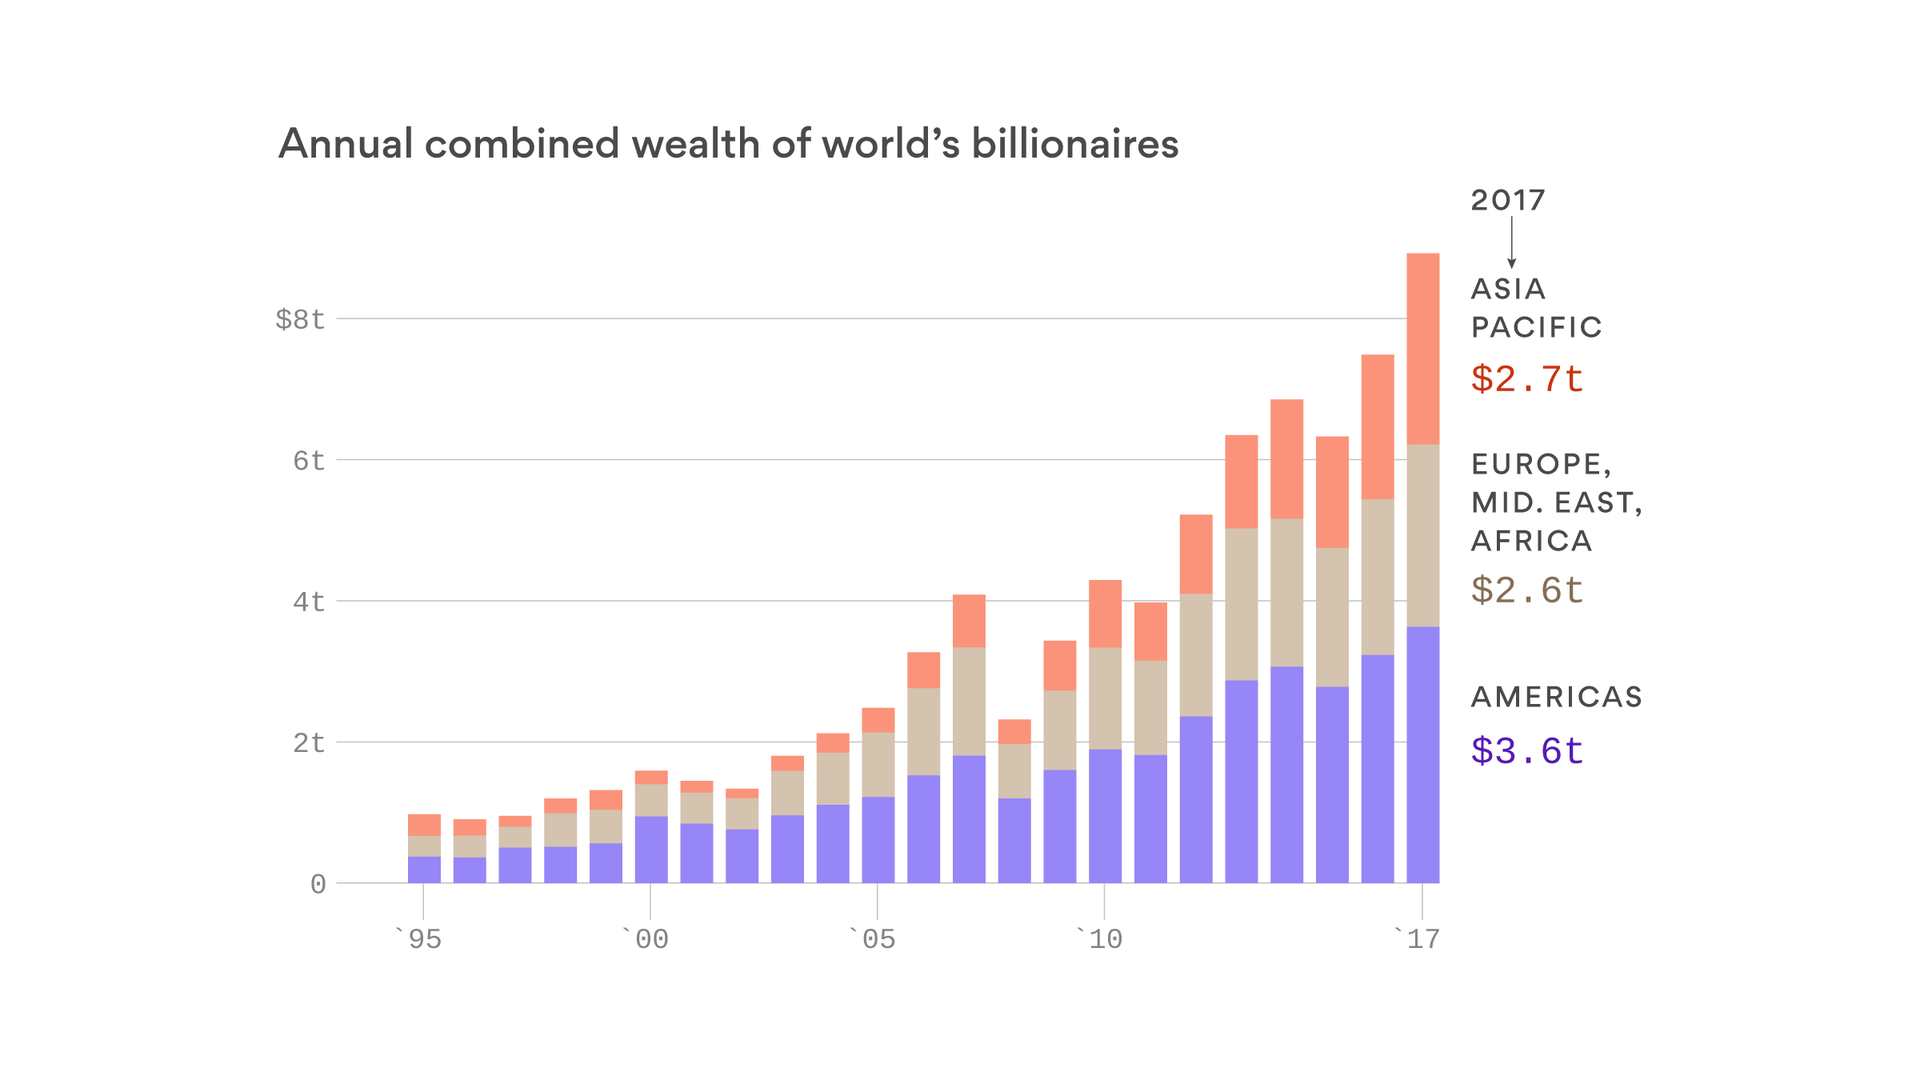 The rise of Chinese billionaires